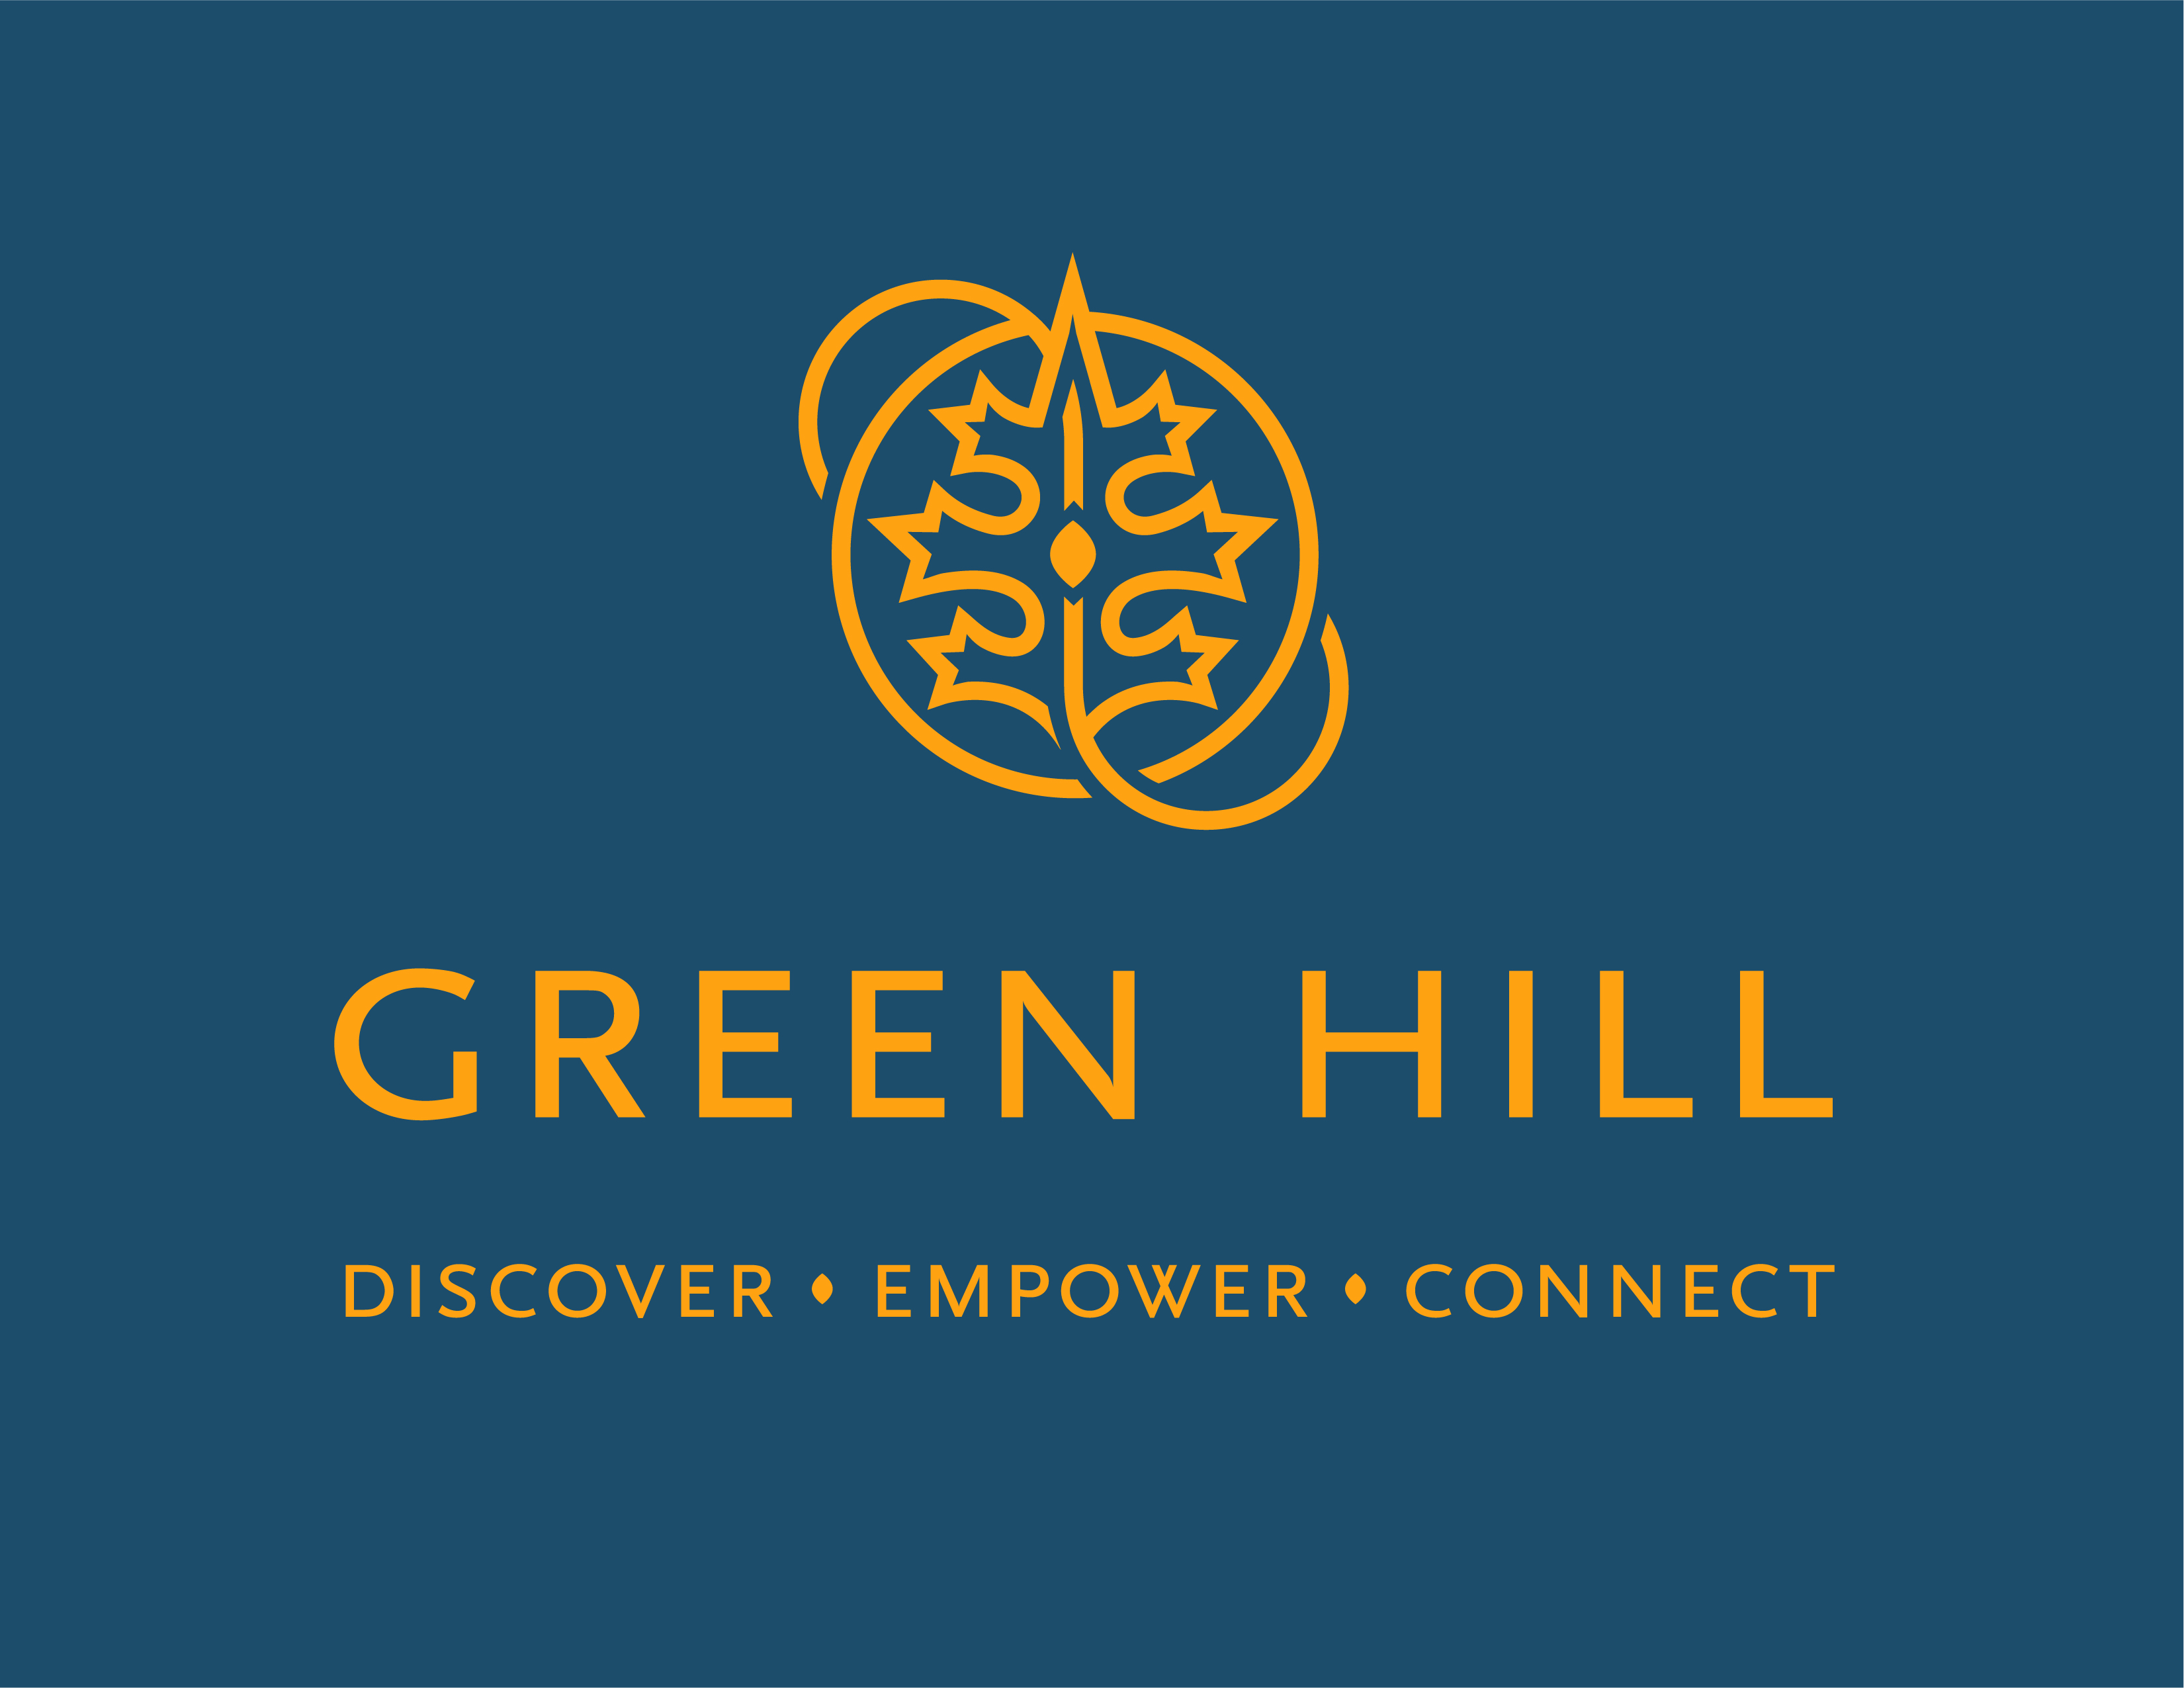 Green Hill recovery's logo.